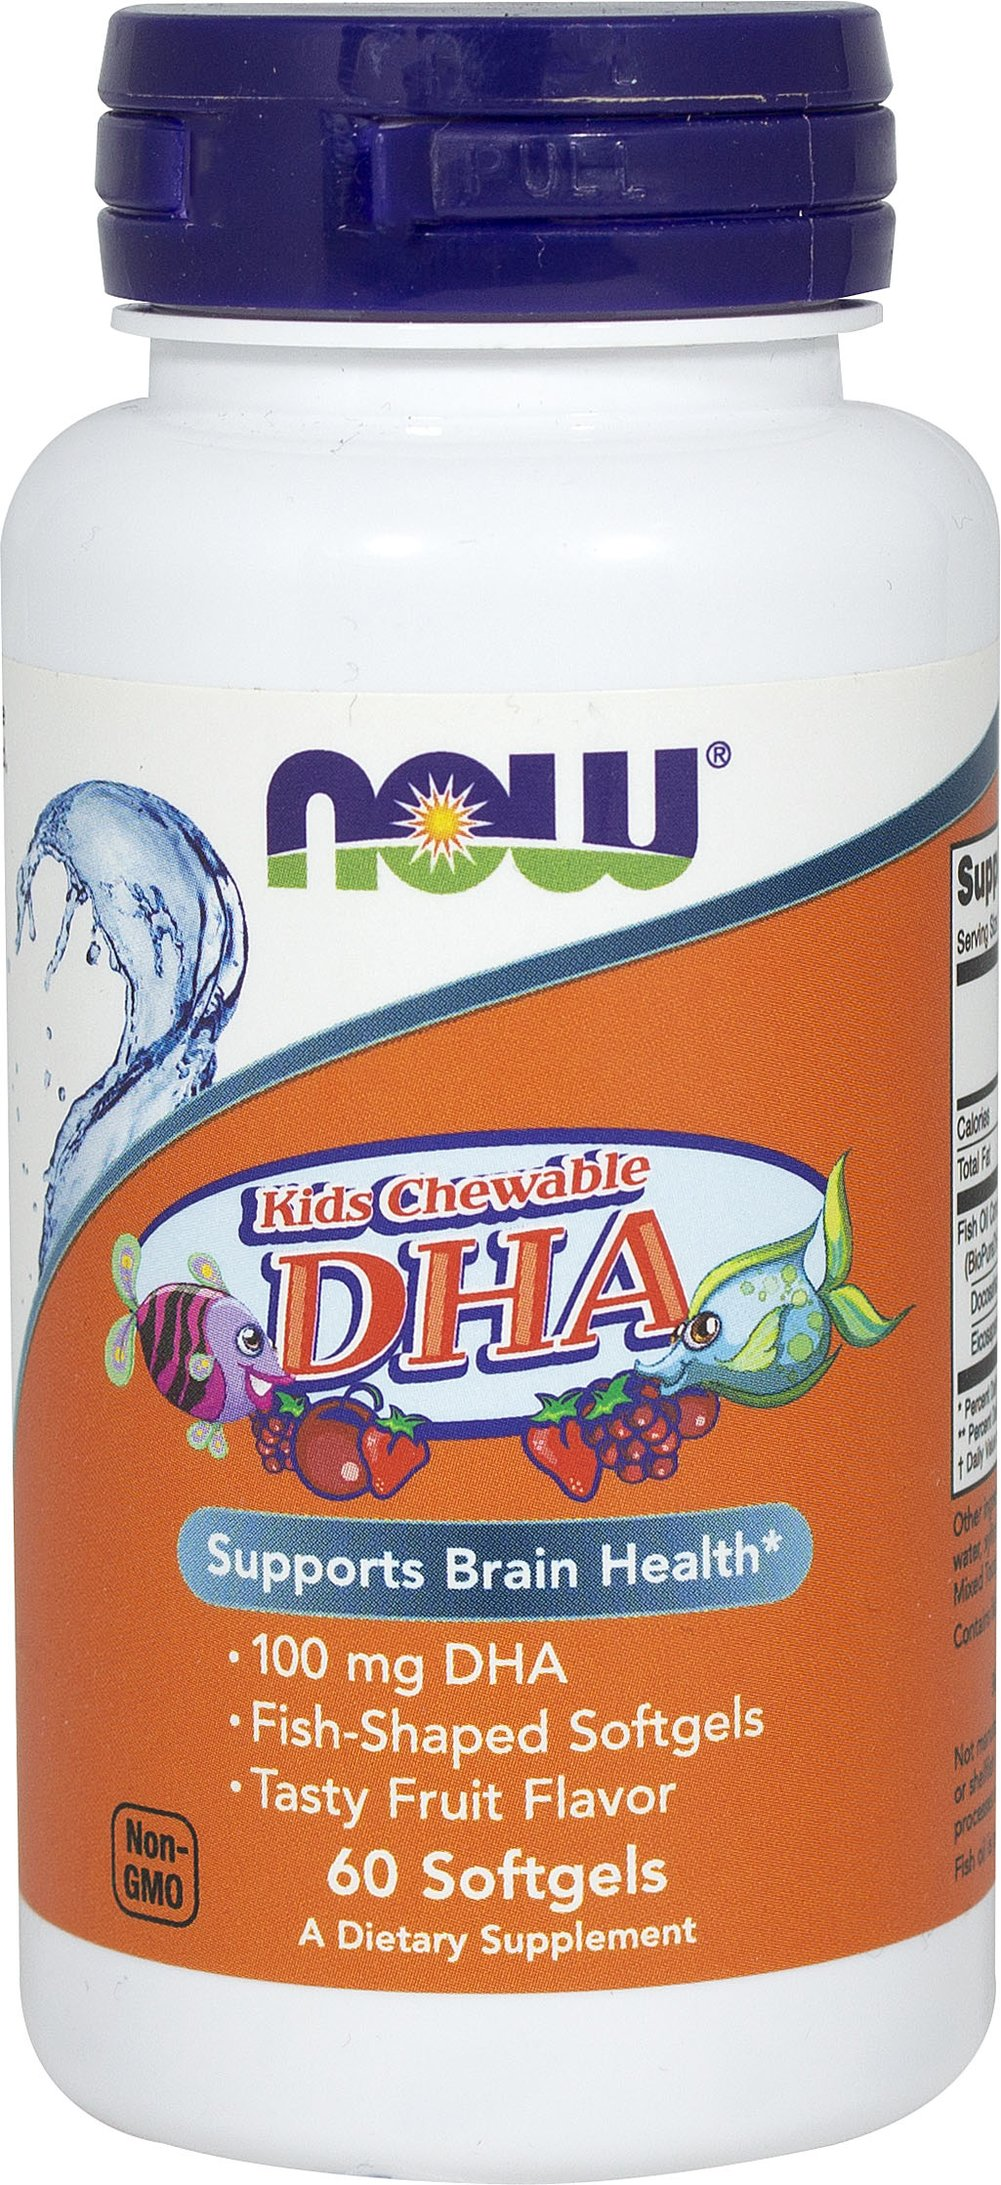 Kids Chewable DHA <p><strong>From the manufacturer:</strong></p><p>Overall Health**</p><p>Fish-shaped softgels</p><p>Tasty fruit-flavor</p> 60 Softgels  $8.99